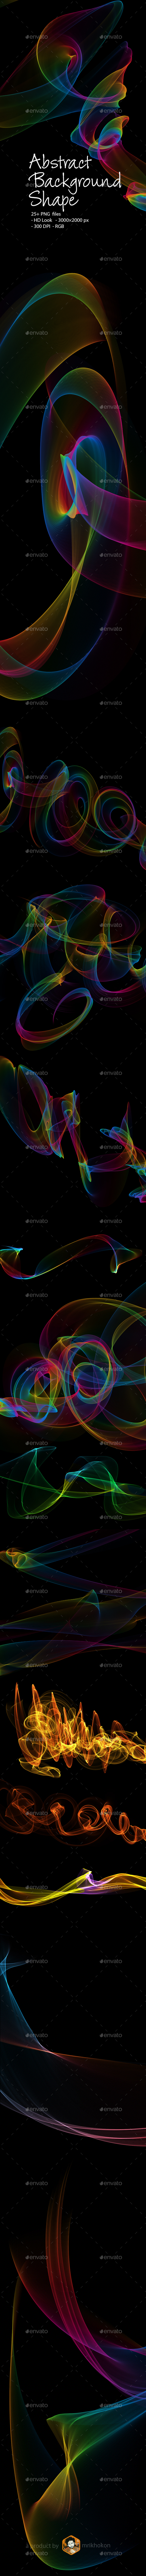 Abstract Background Shape - Abstract Backgrounds